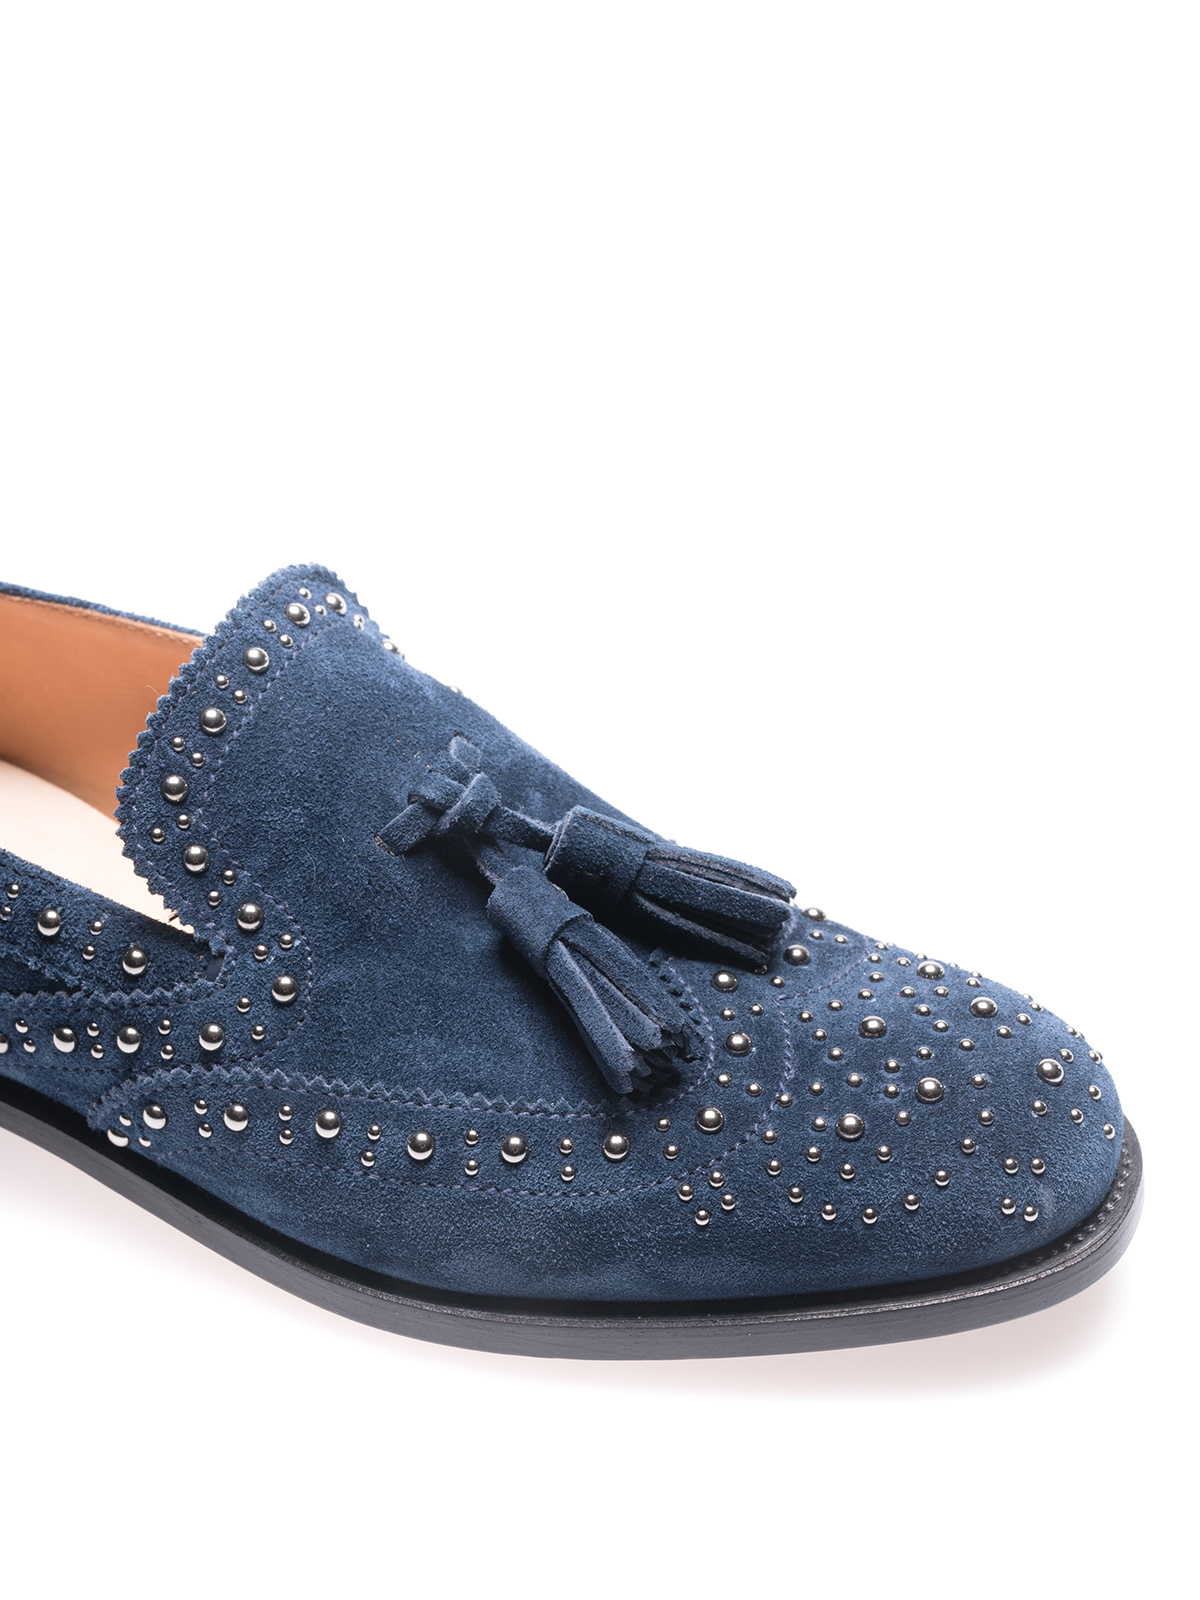 2b8455dd0e9 Church s - Stud detailed blue suede loafers - Loafers   Slippers ...